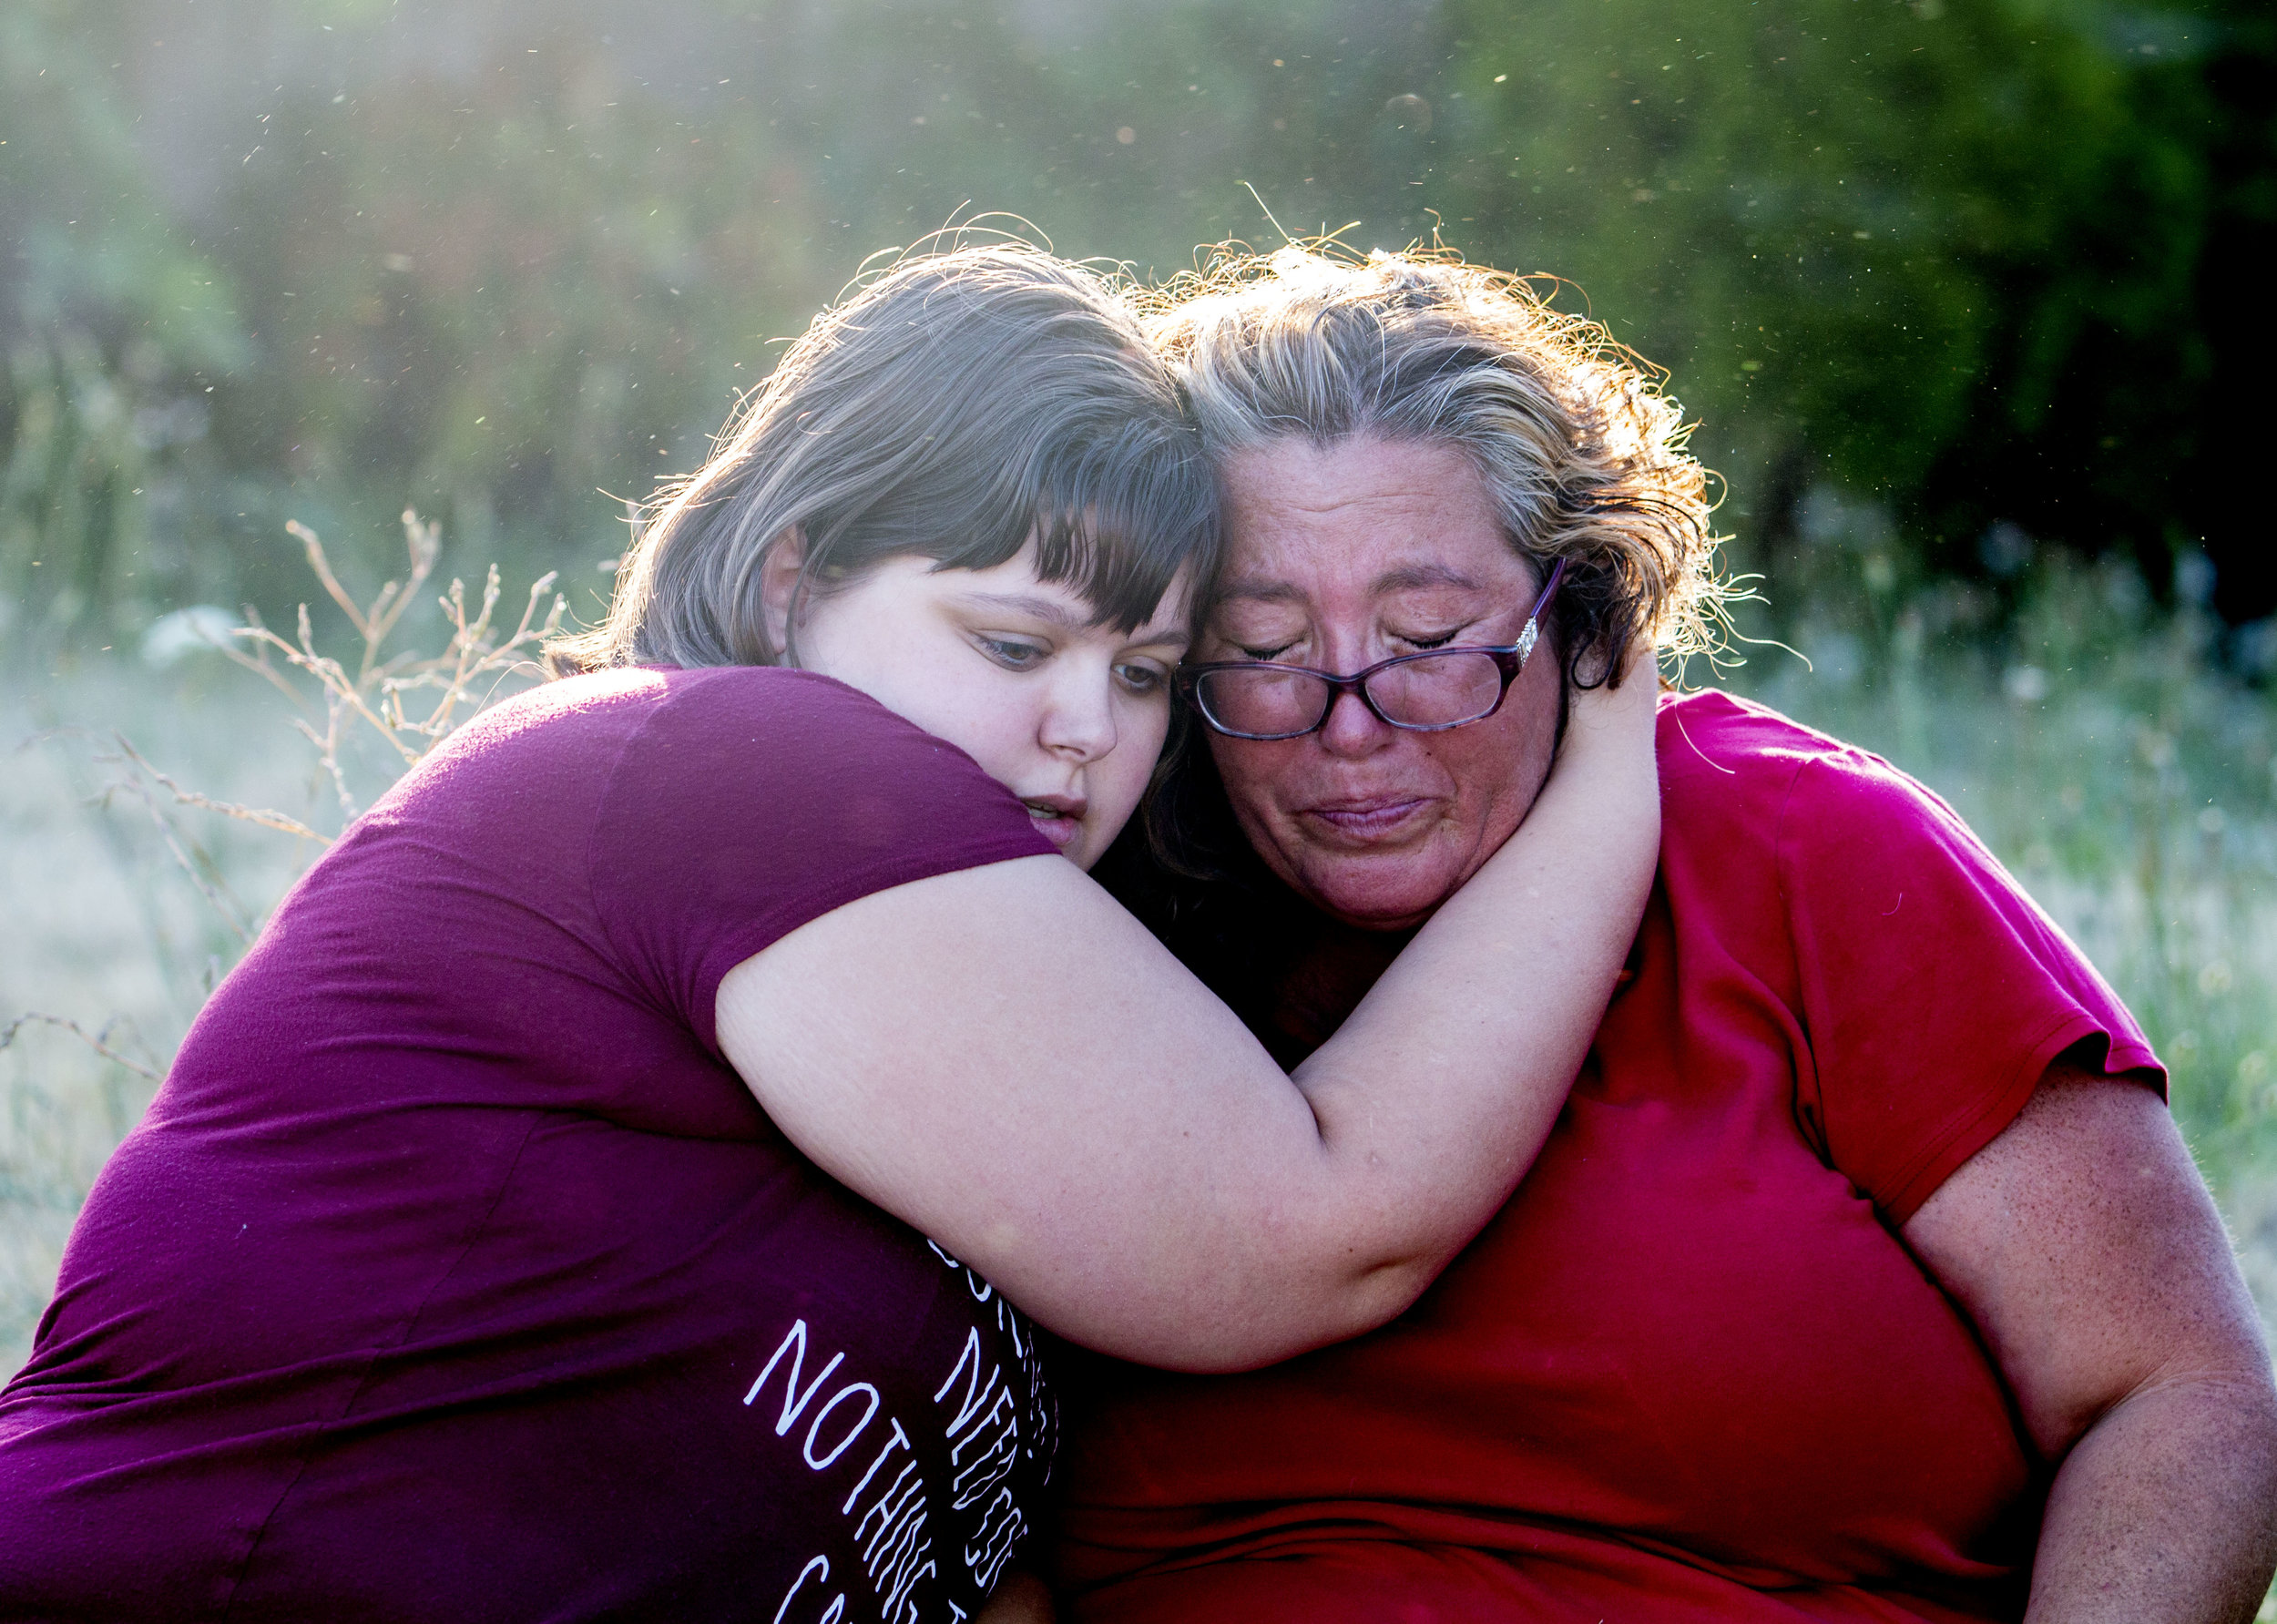 Breanna Evans (left) consoles Jean Schaible after Schaible's mother's house went up in flames on her mothers birthday. Both Schaible and her mother Shirley Henson were able to safely make it out of the house with the help of neighbor Nolan Nease, 19, who ran into the house and helped carry Shirley and her wheelchair to safety. The damage to the house made it inhabitable, meaning it would have to be torn down.